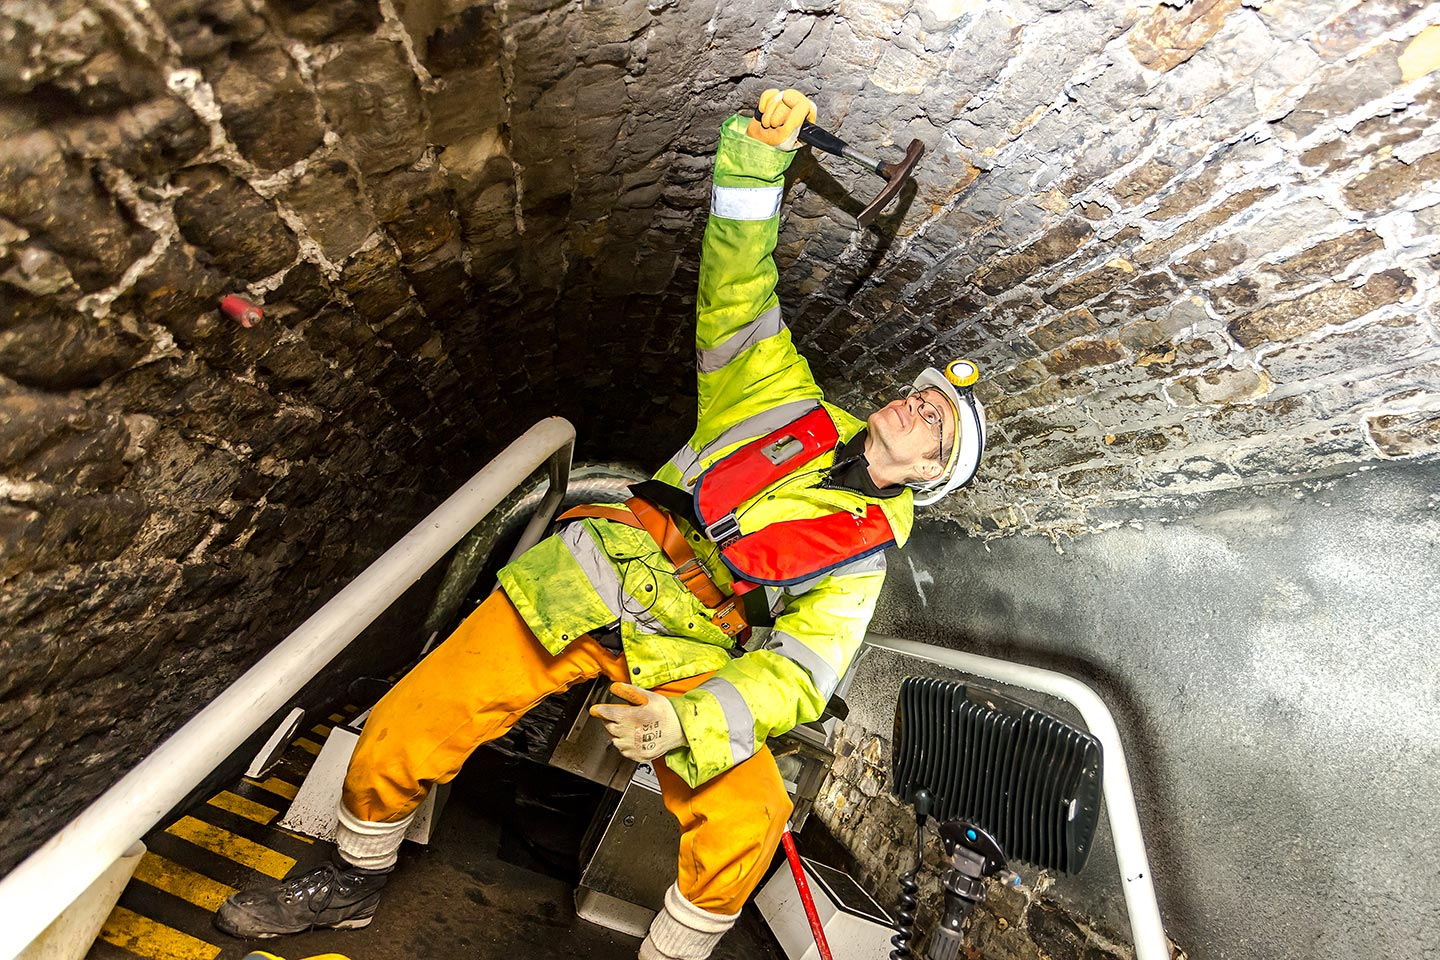 John carrying out an inspection of the roof lining in the Standedge Tunnel